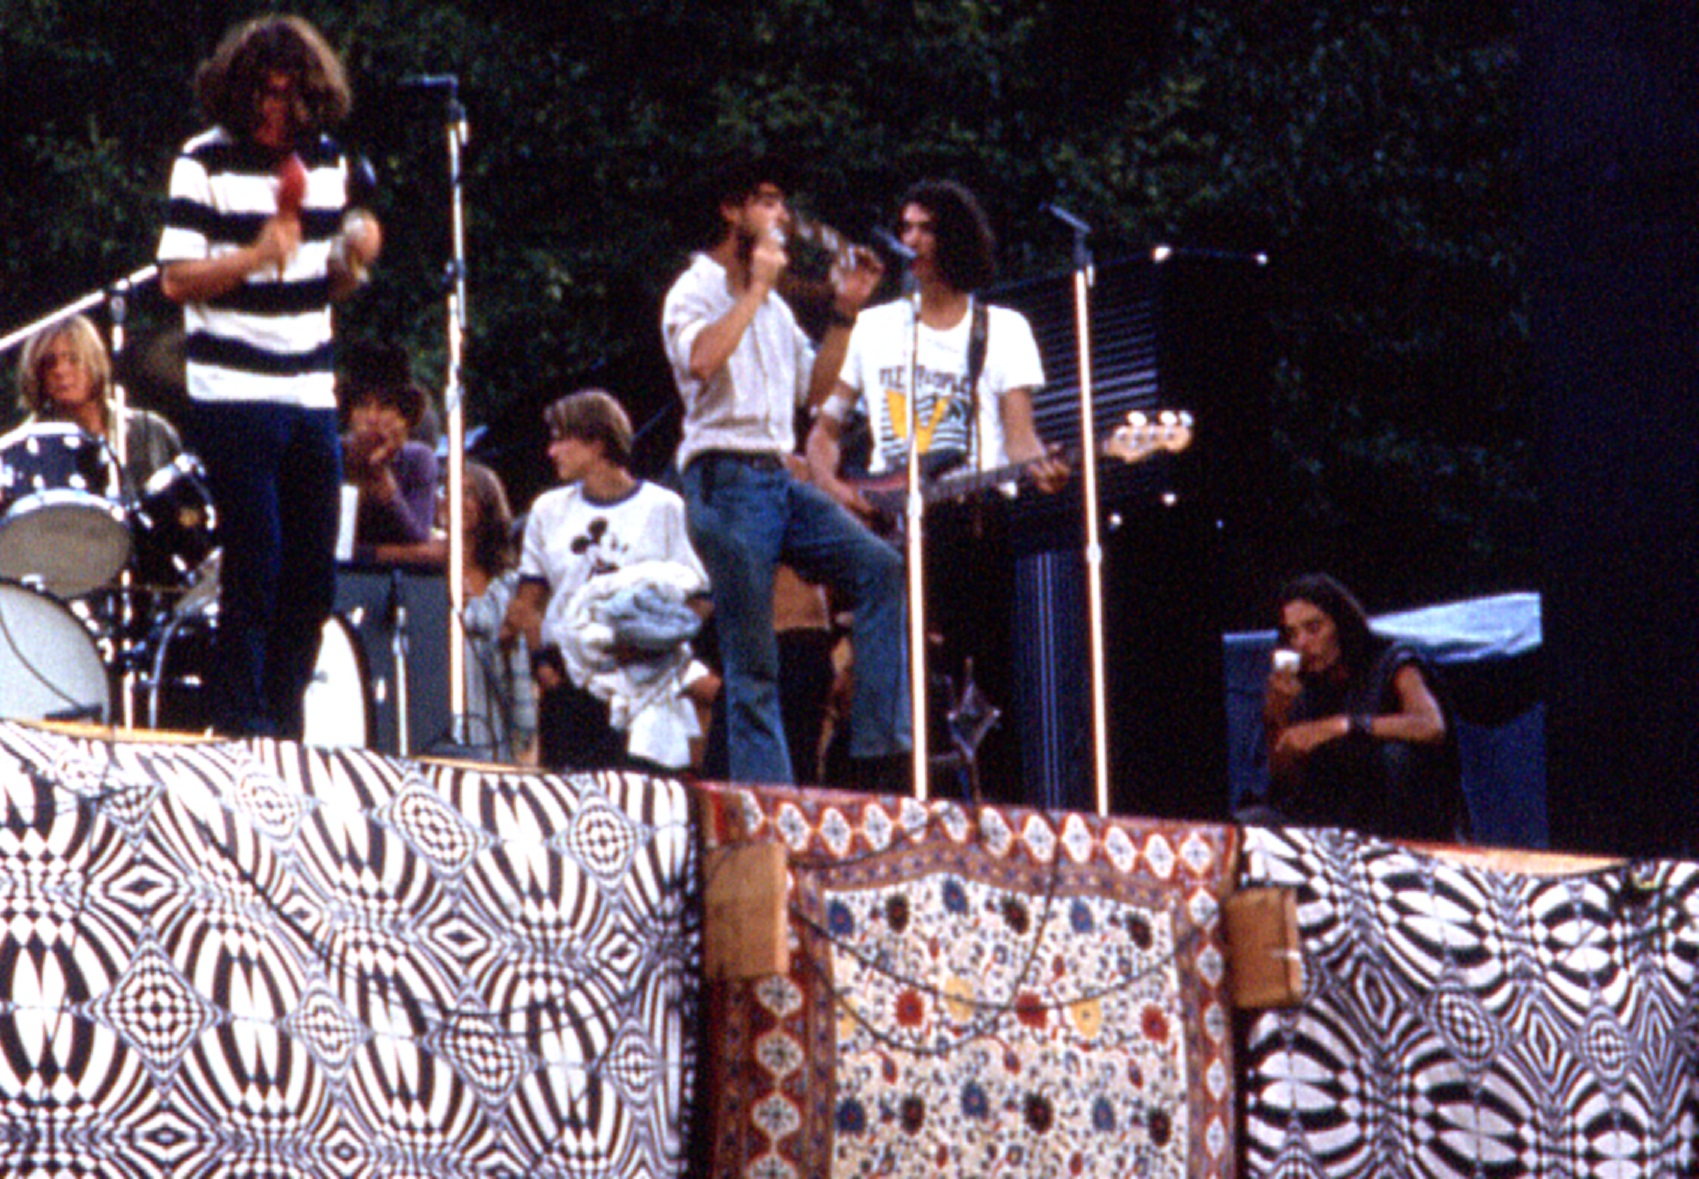 Band on Stage - Vortex 1 - 1970 - McIver State Park